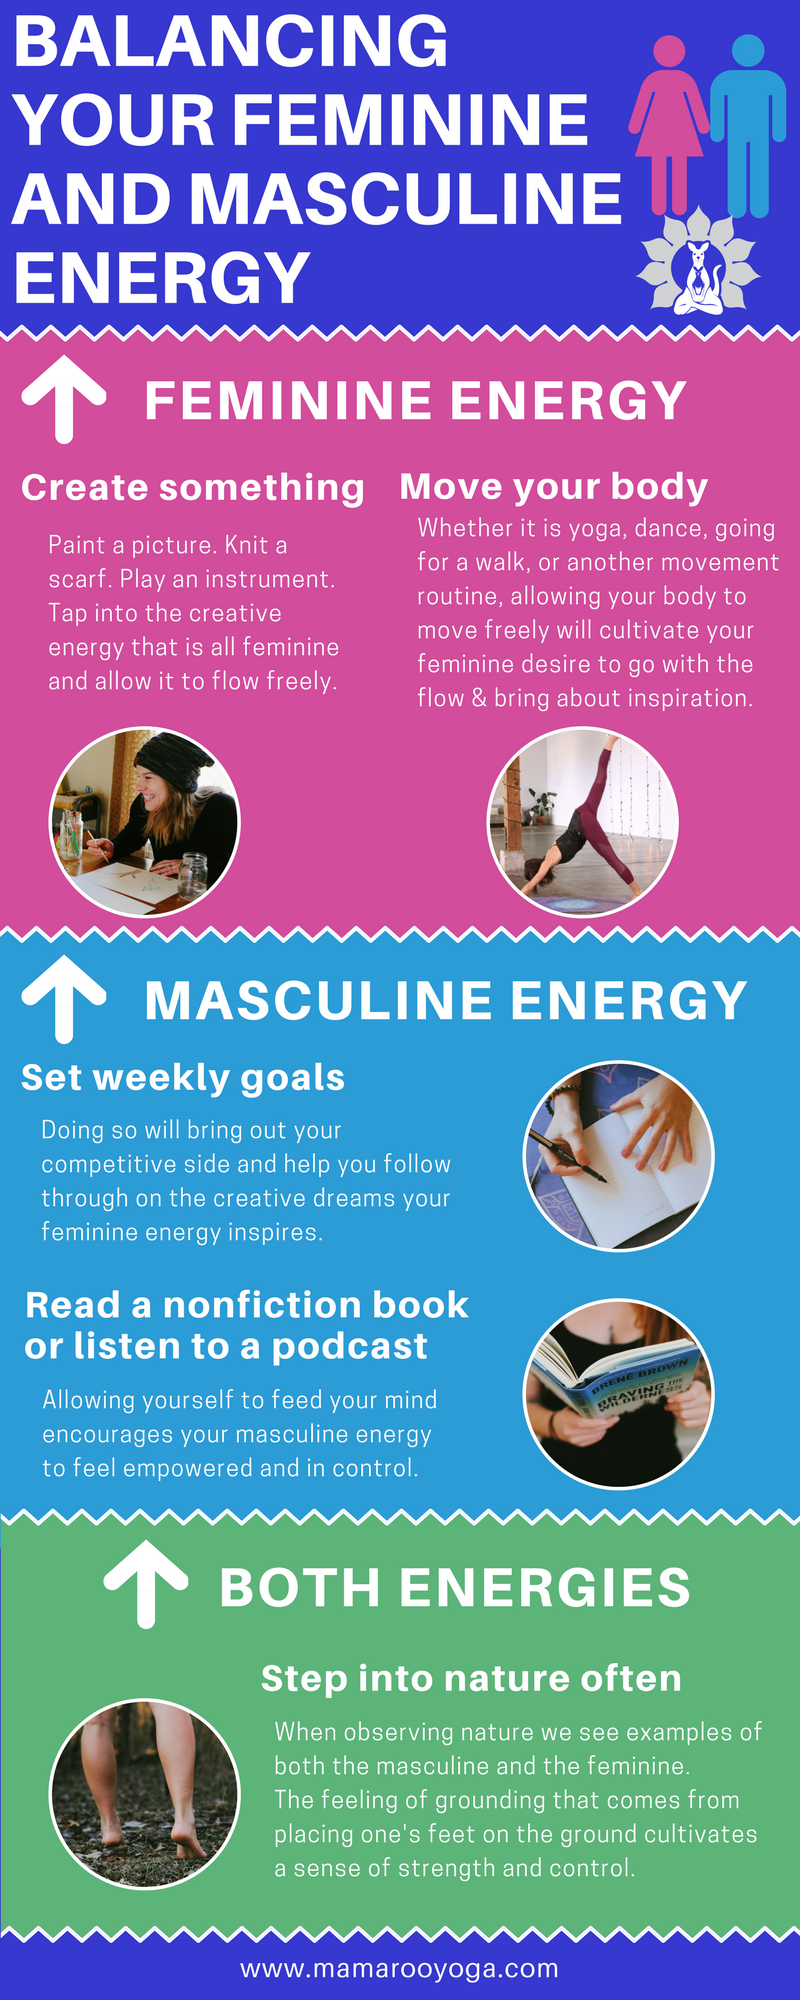 Balancing your feminine and masculine energy graphic